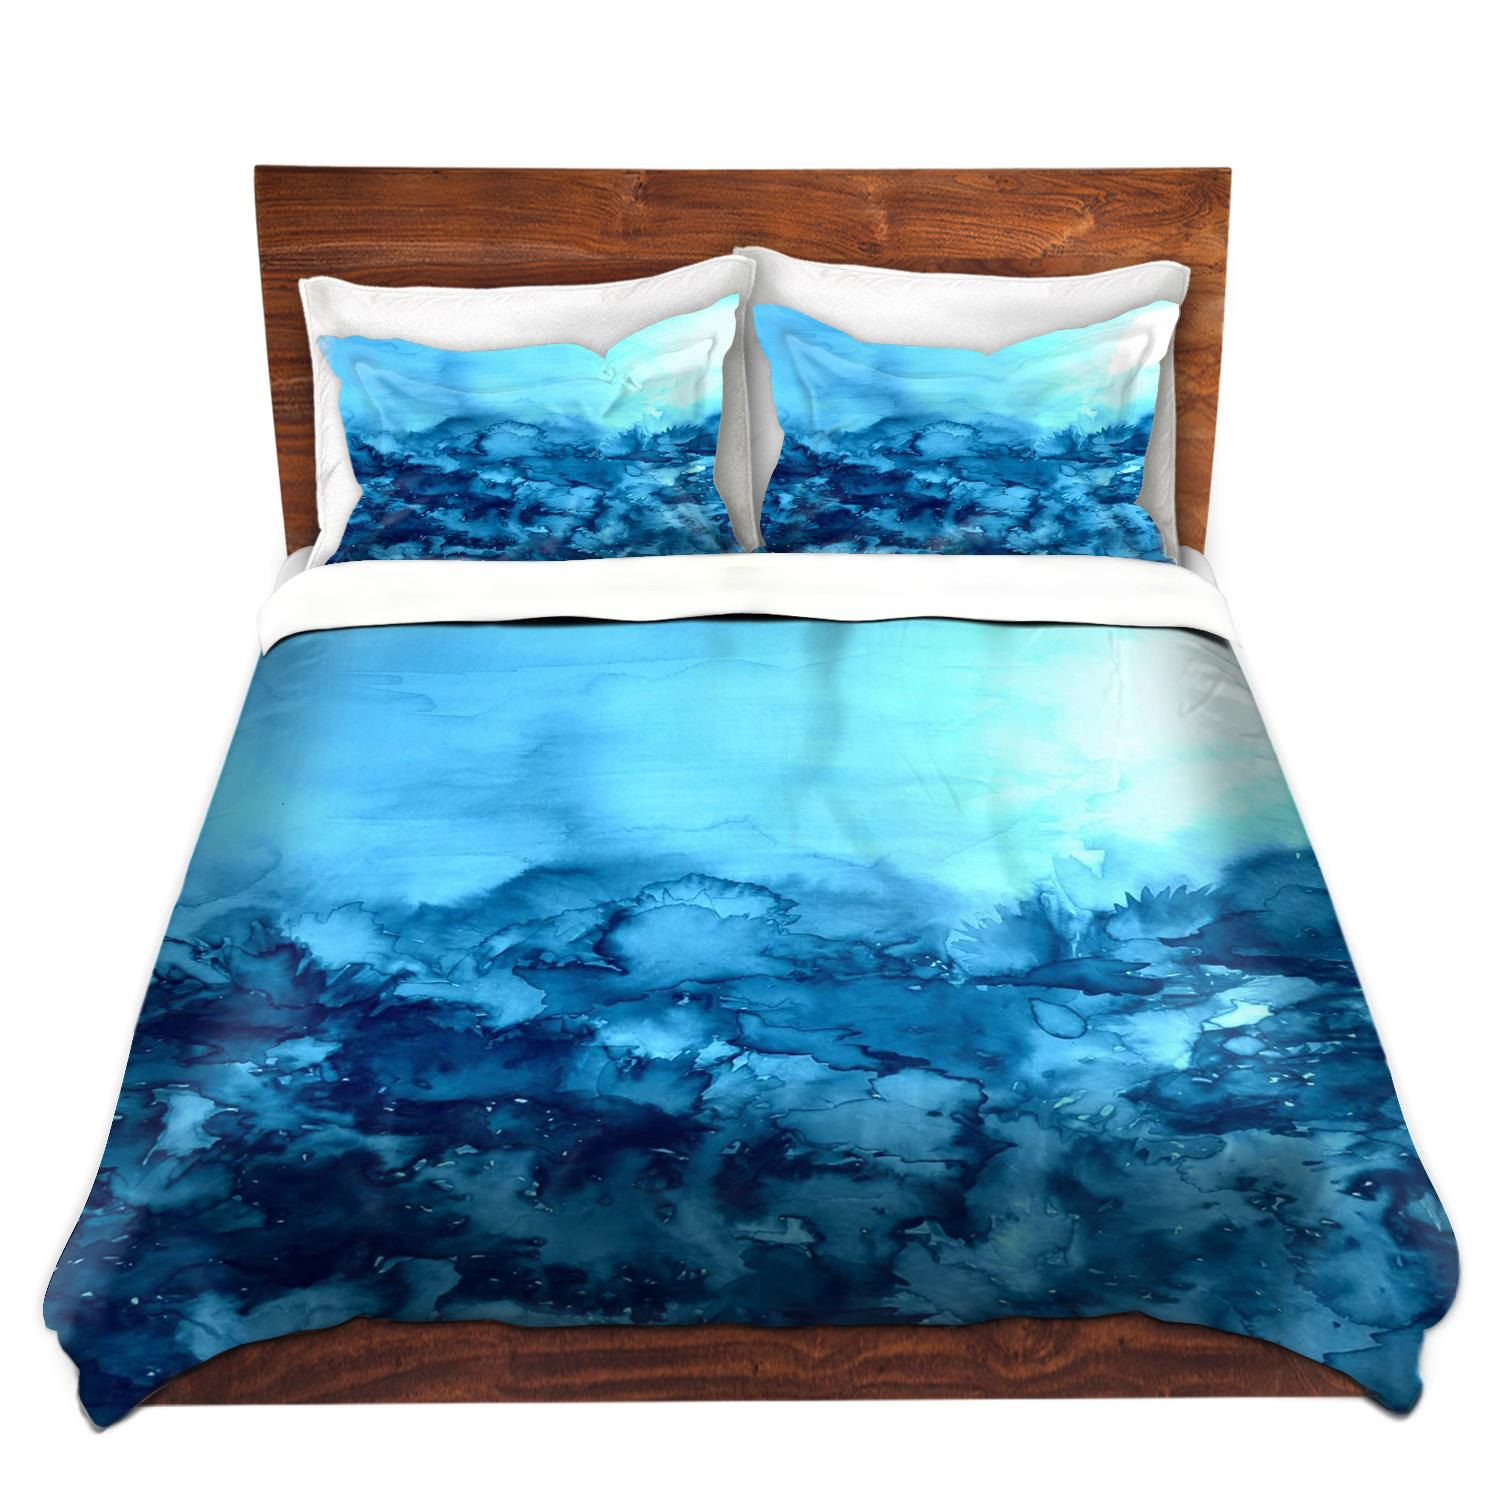 queen navy linen california comforter dimensions turquoise size ae wondrous covers edding flannel chic agisee white cotton cover sets with bedroom set duvet sheets furniture light of full xl ideas double bedding king duvets and elegant fabulous egyptian blue creative